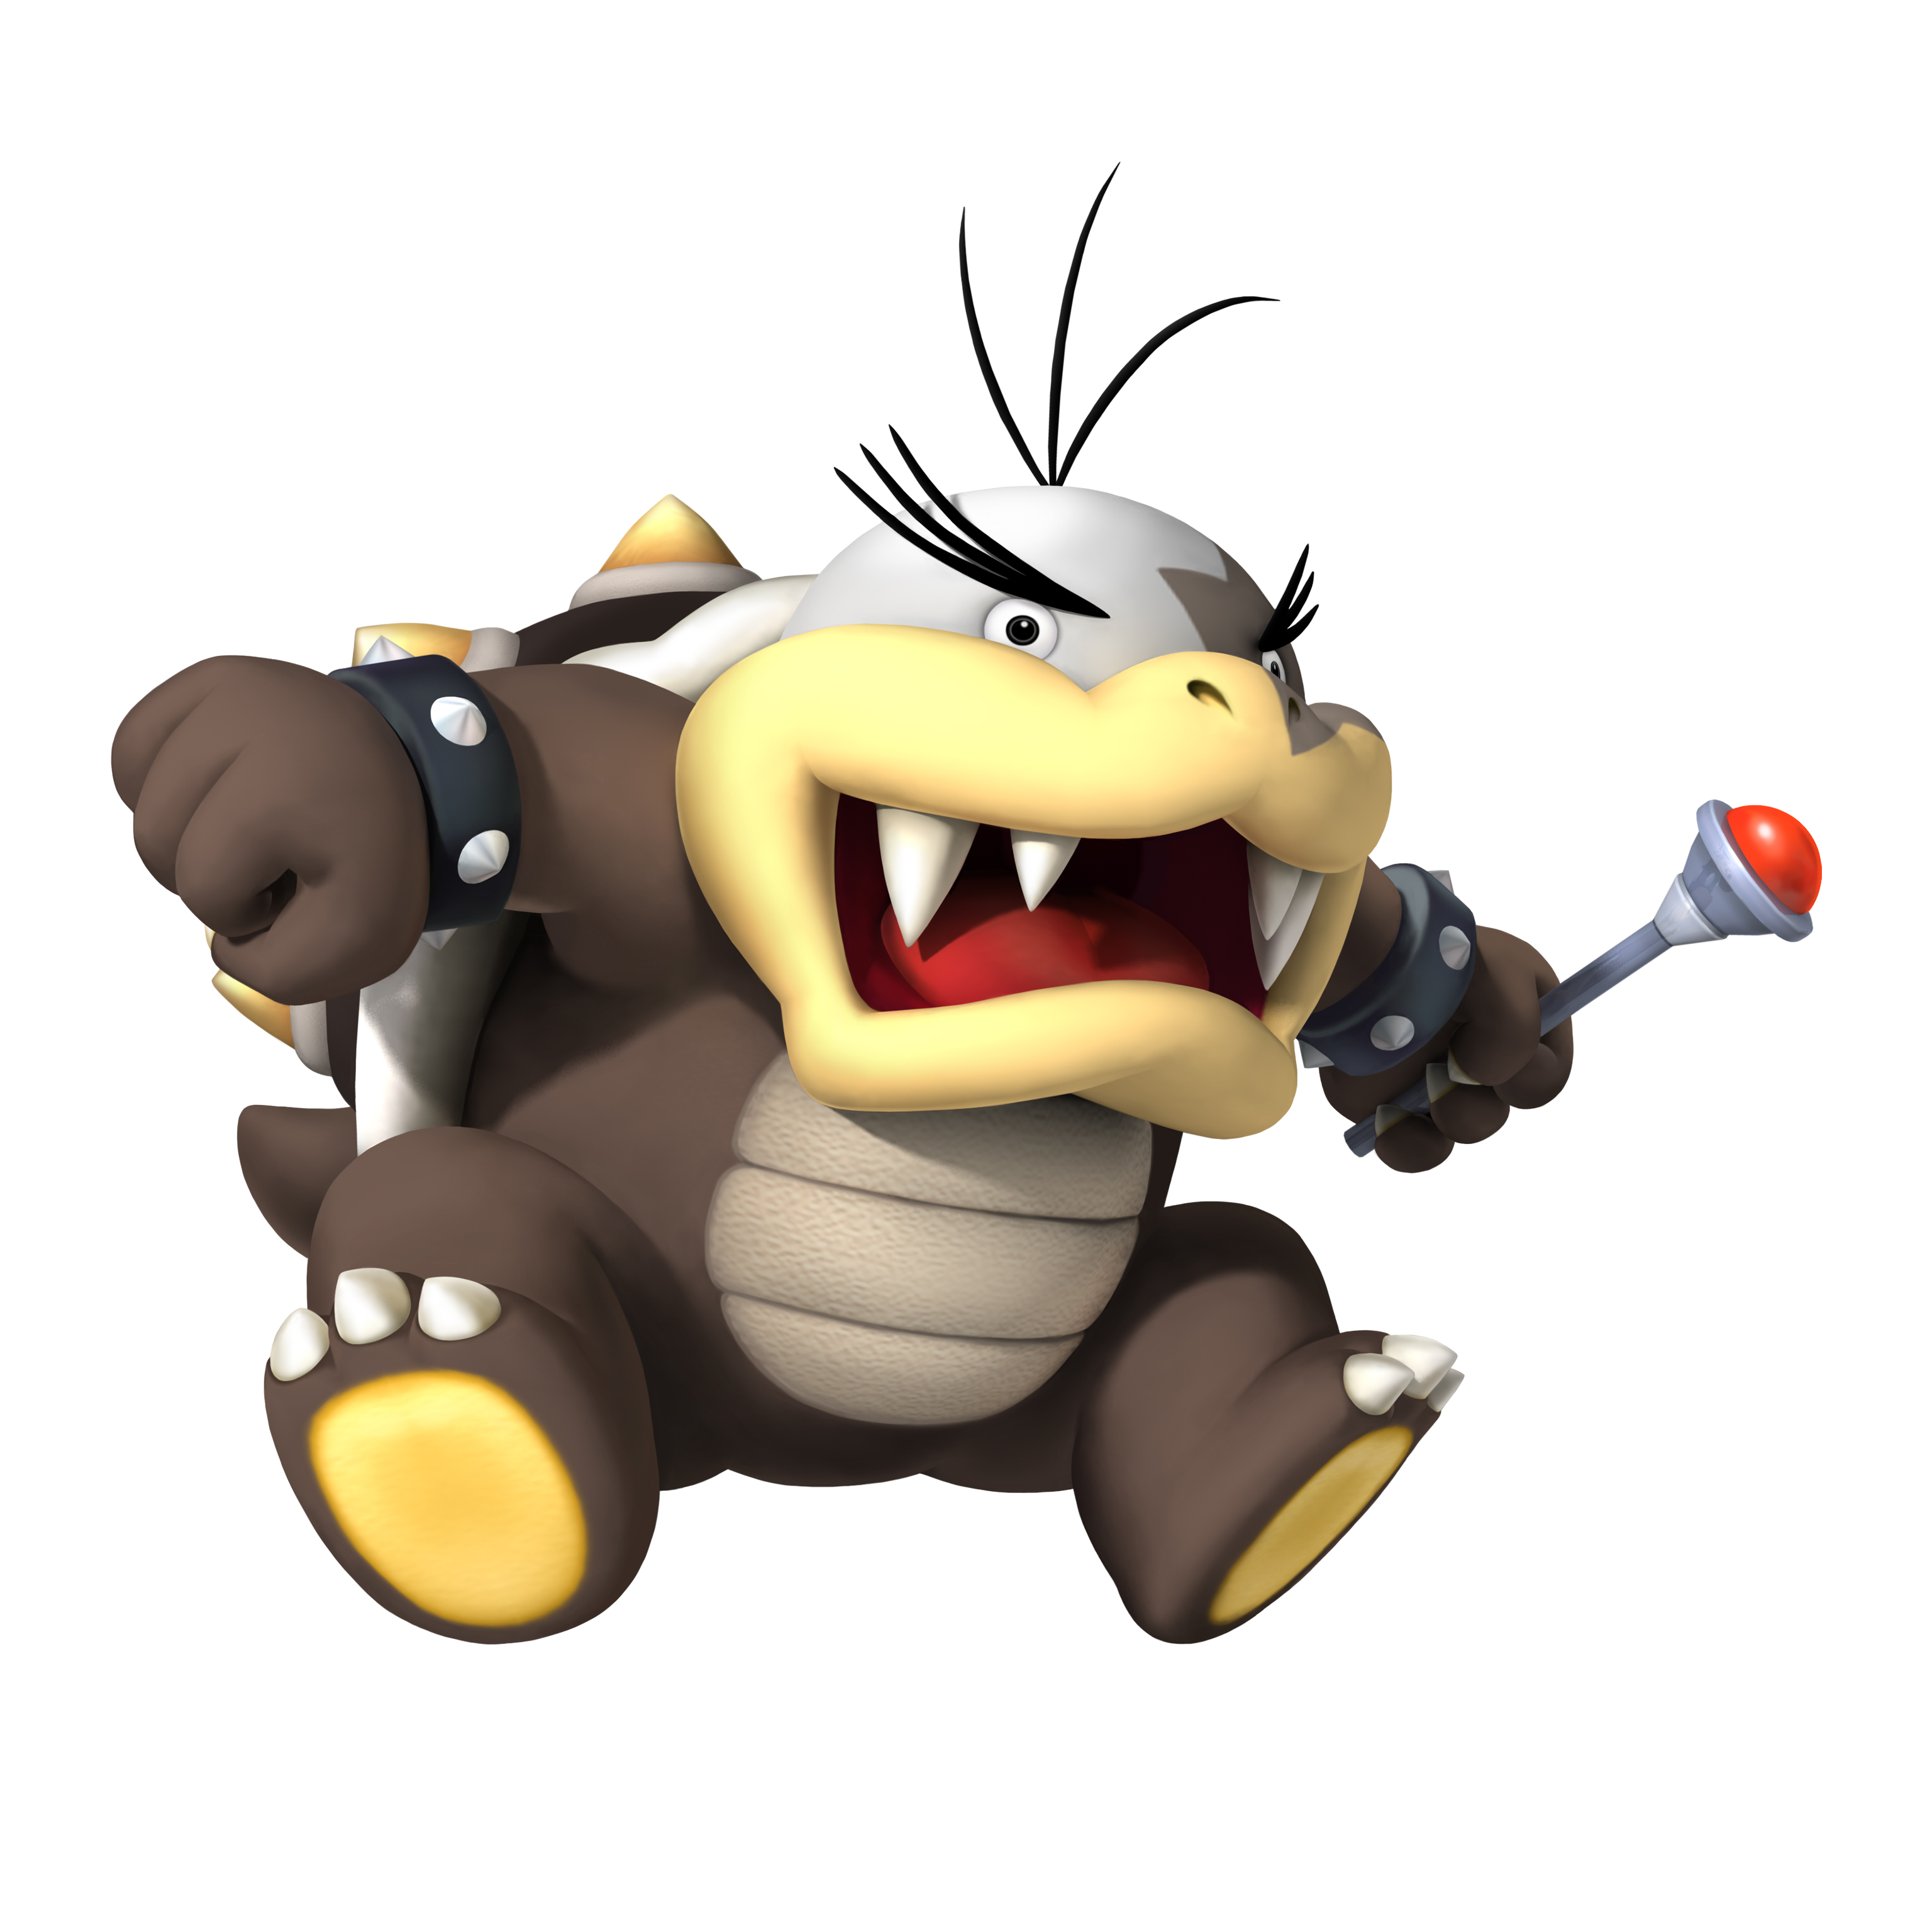 How Would One Classify Bowser's Feet?